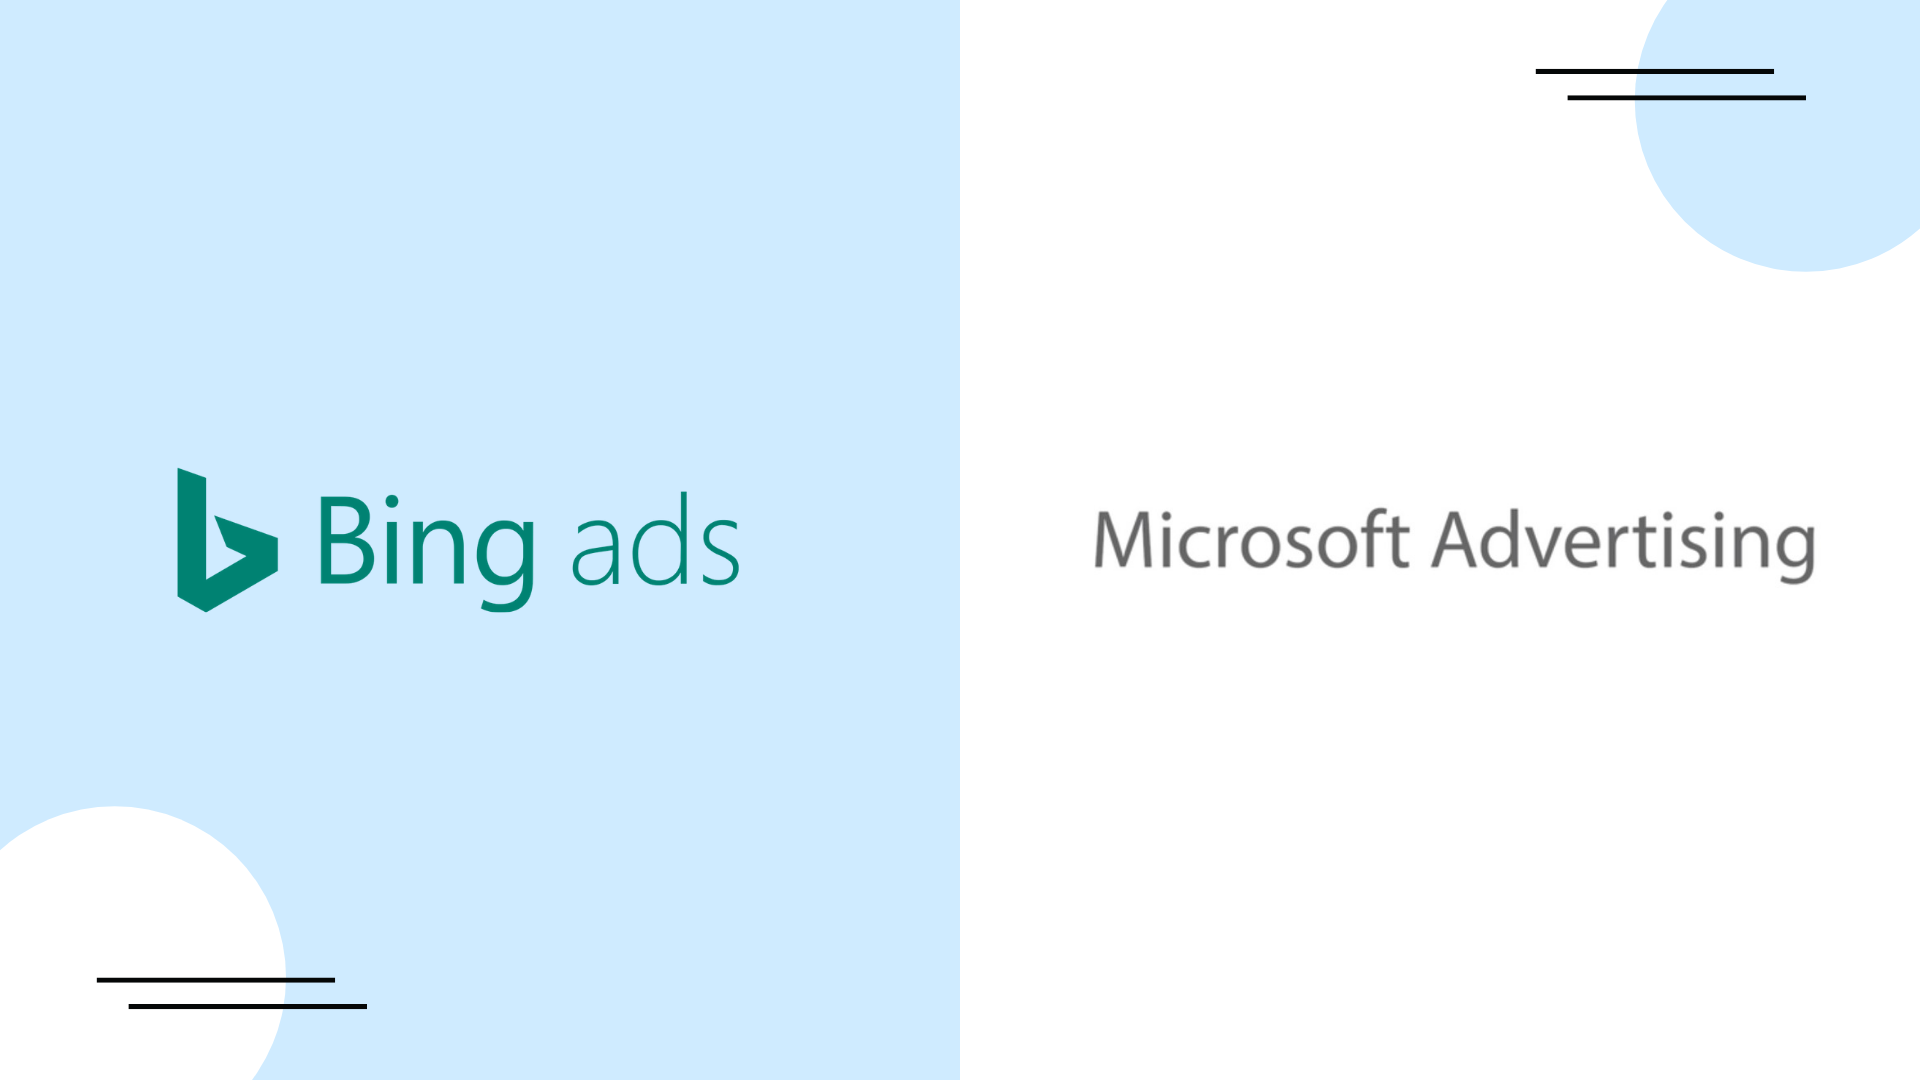 Microsoft advertising is seeking the help of Parallel Tracking feature